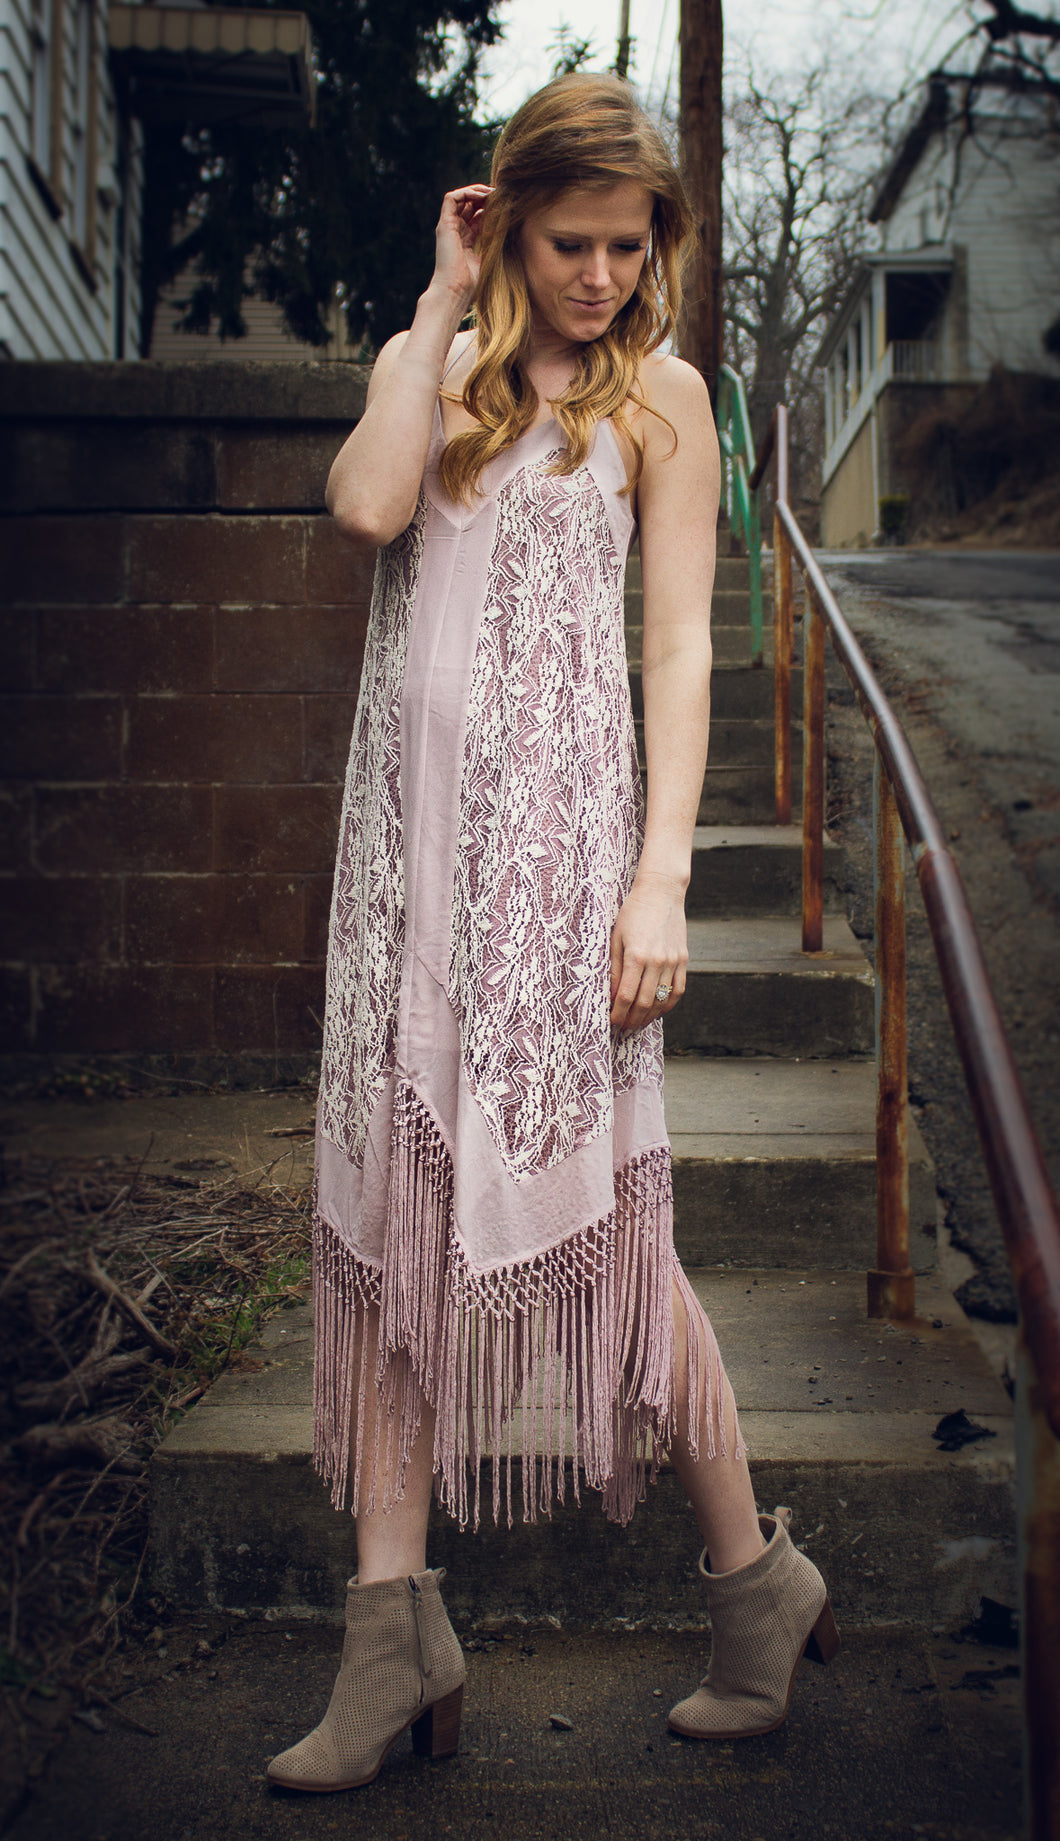 Boho Babe Crochet Lace & Fringe Dress